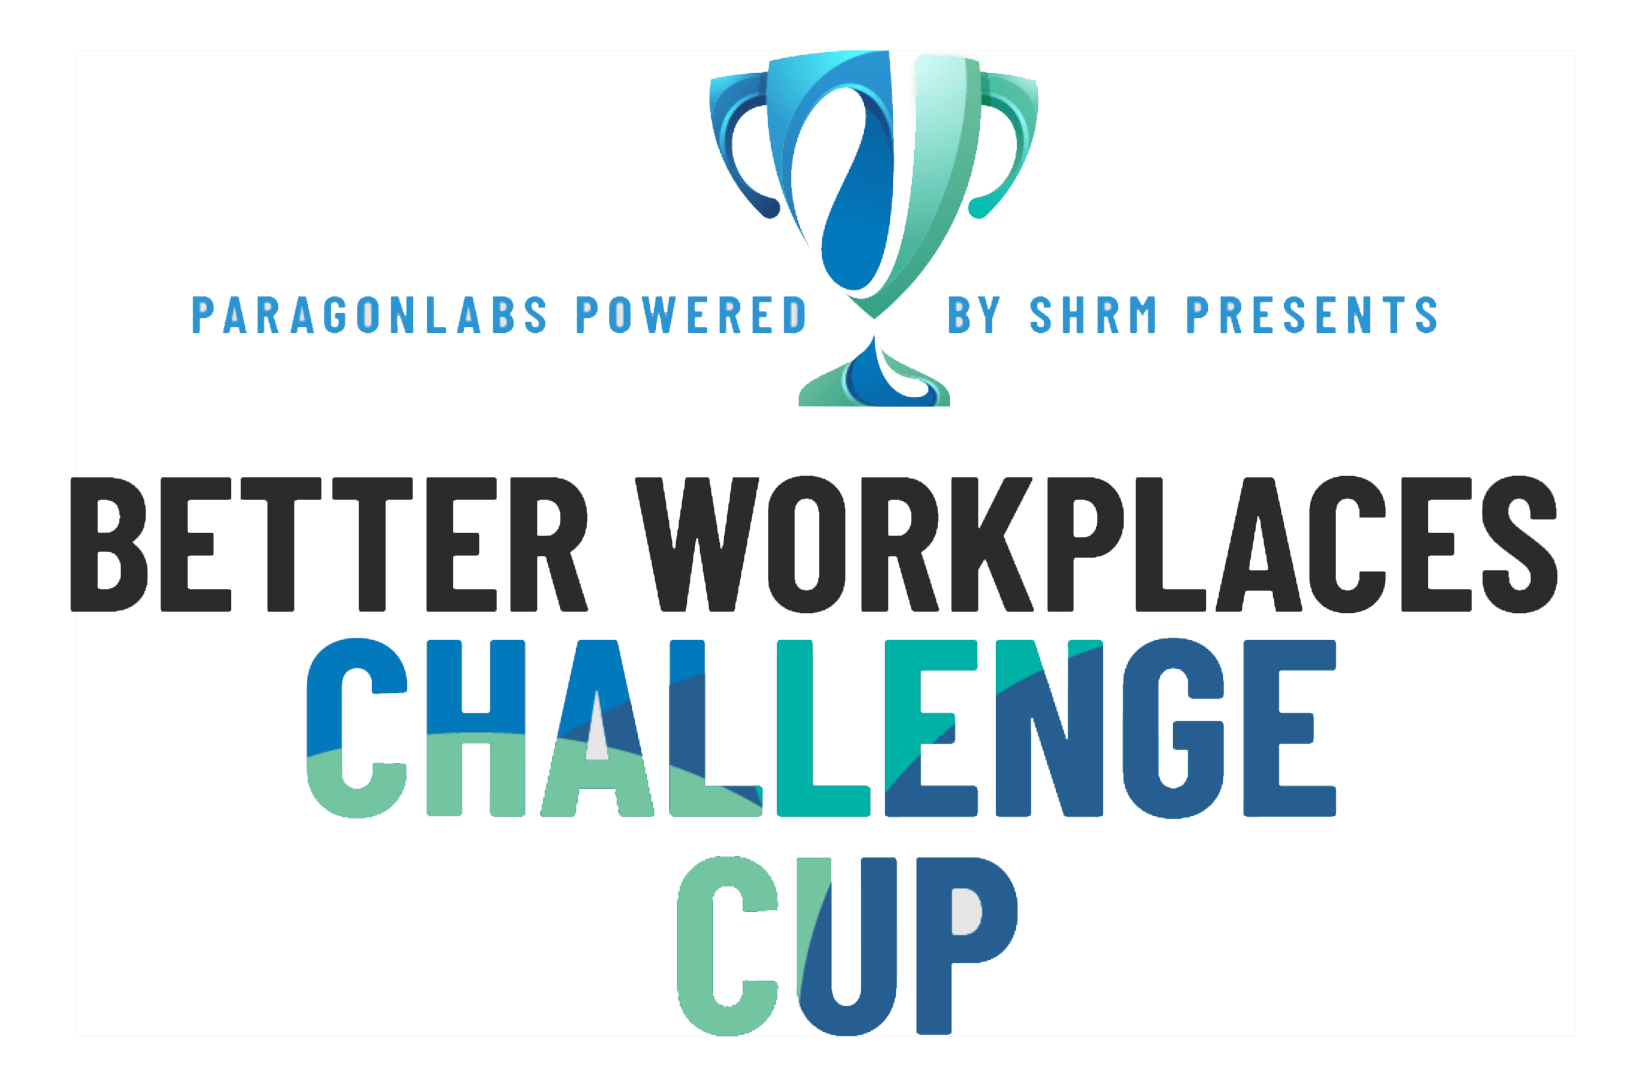 better workplaces challenge cup